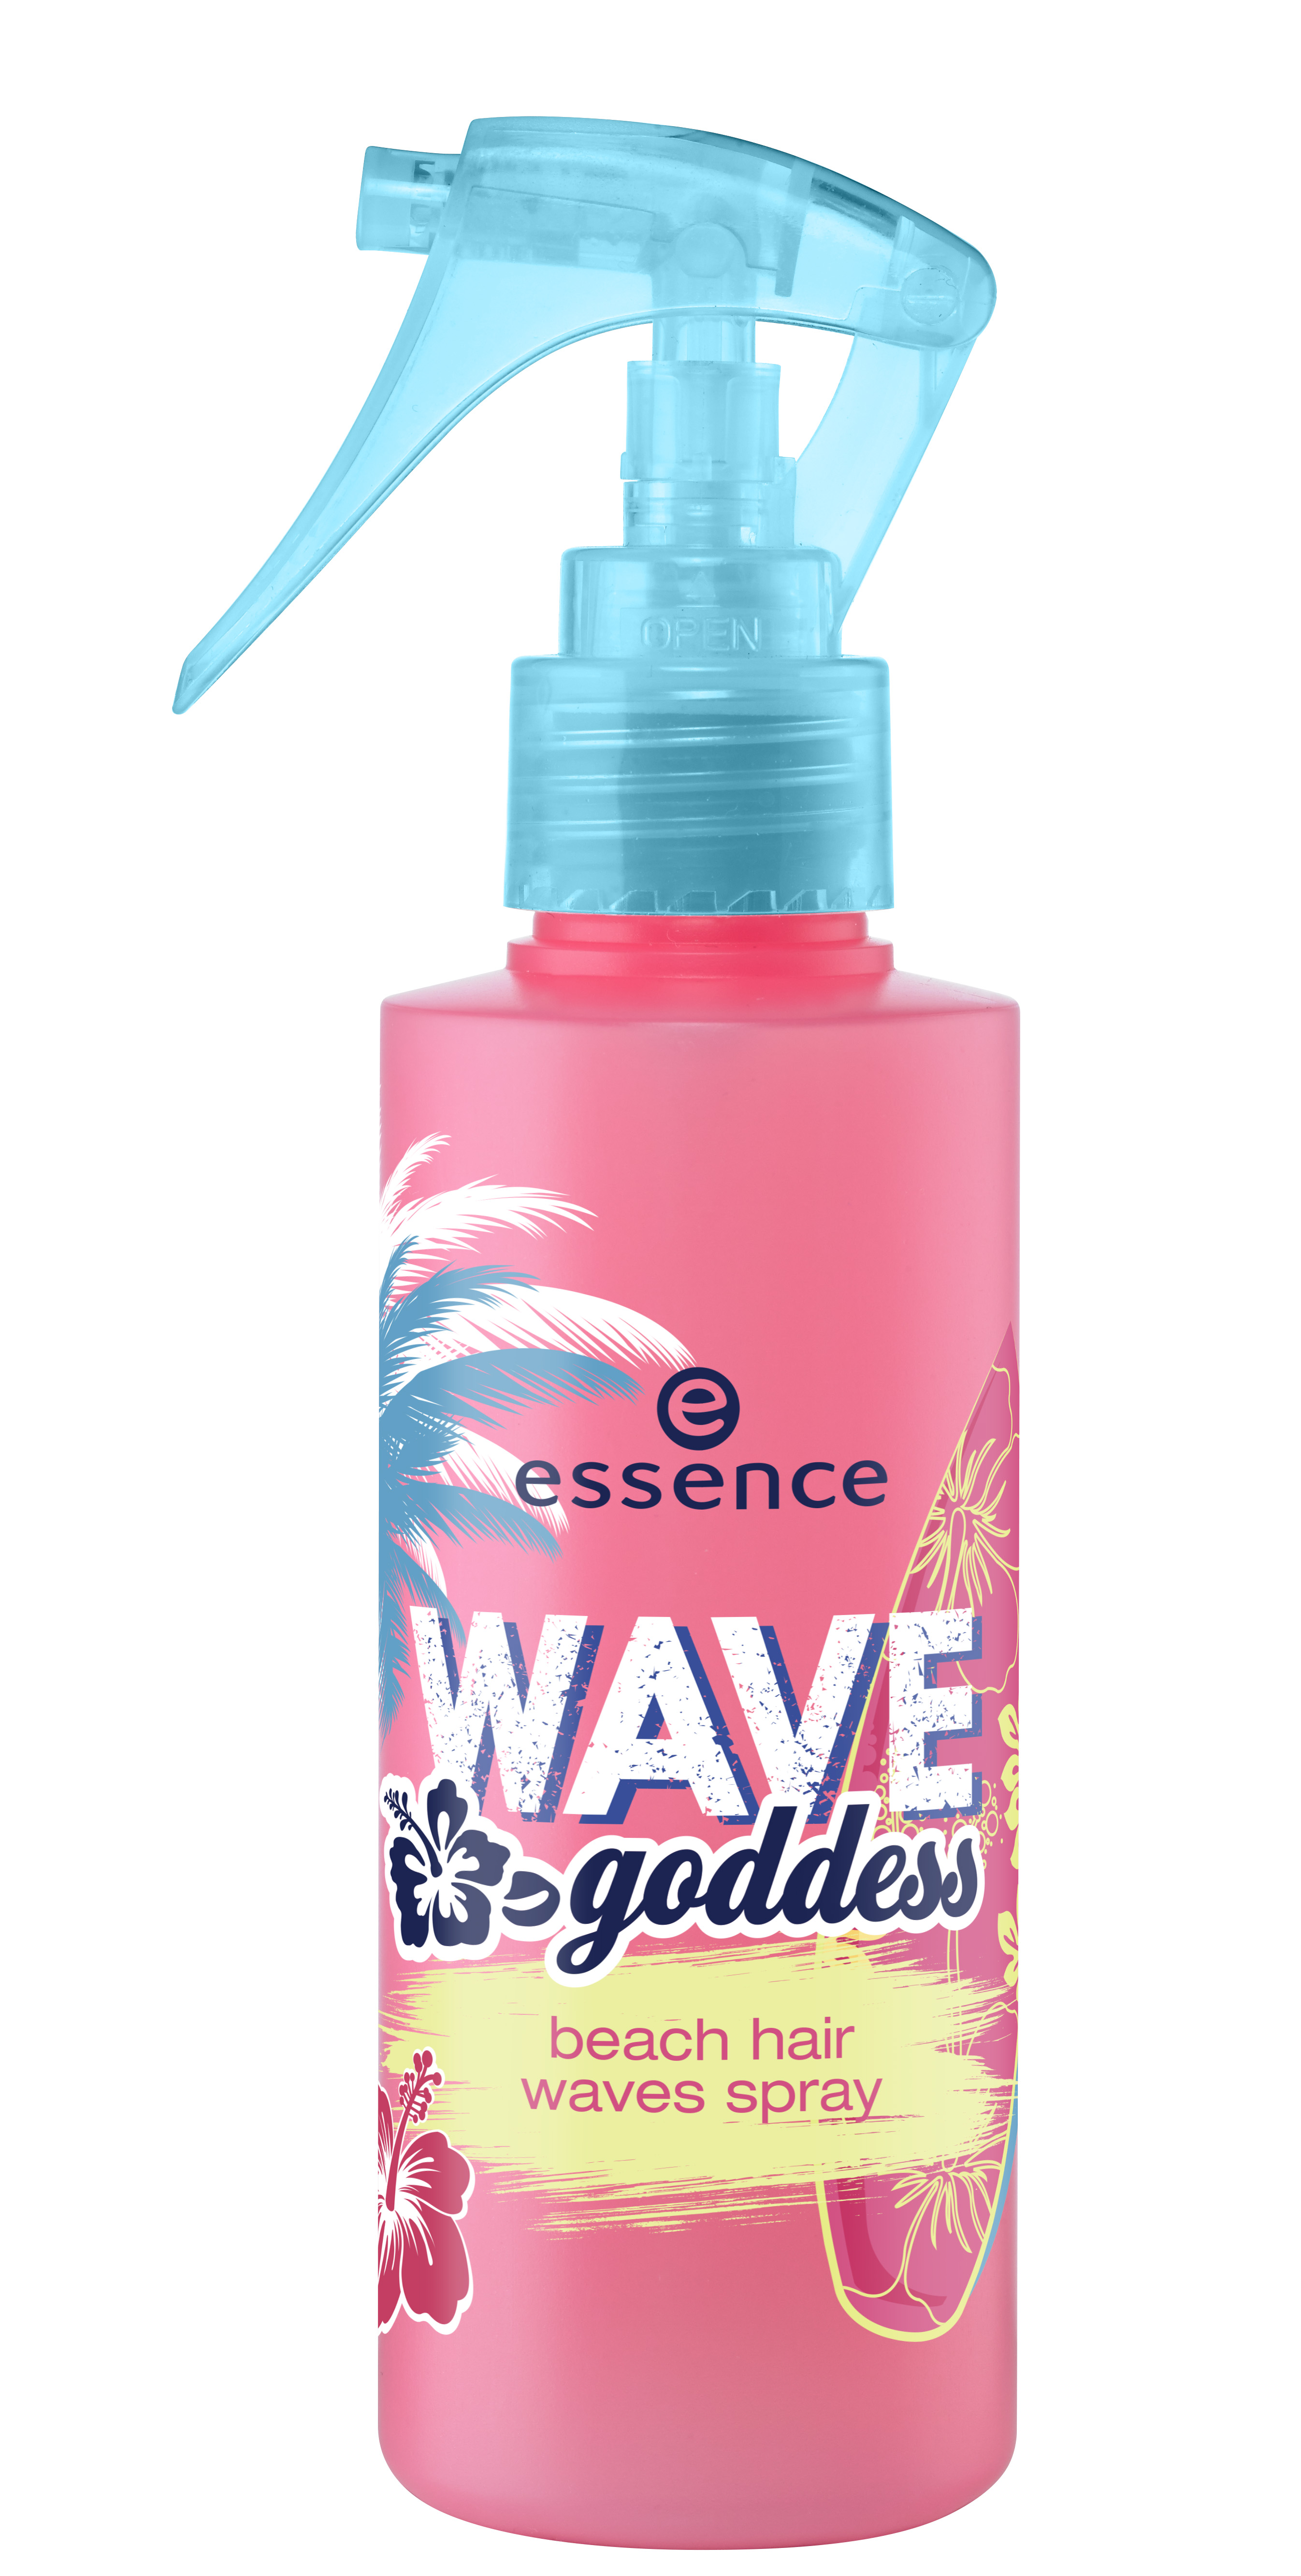 ess. wave goddess beach hair spray 01